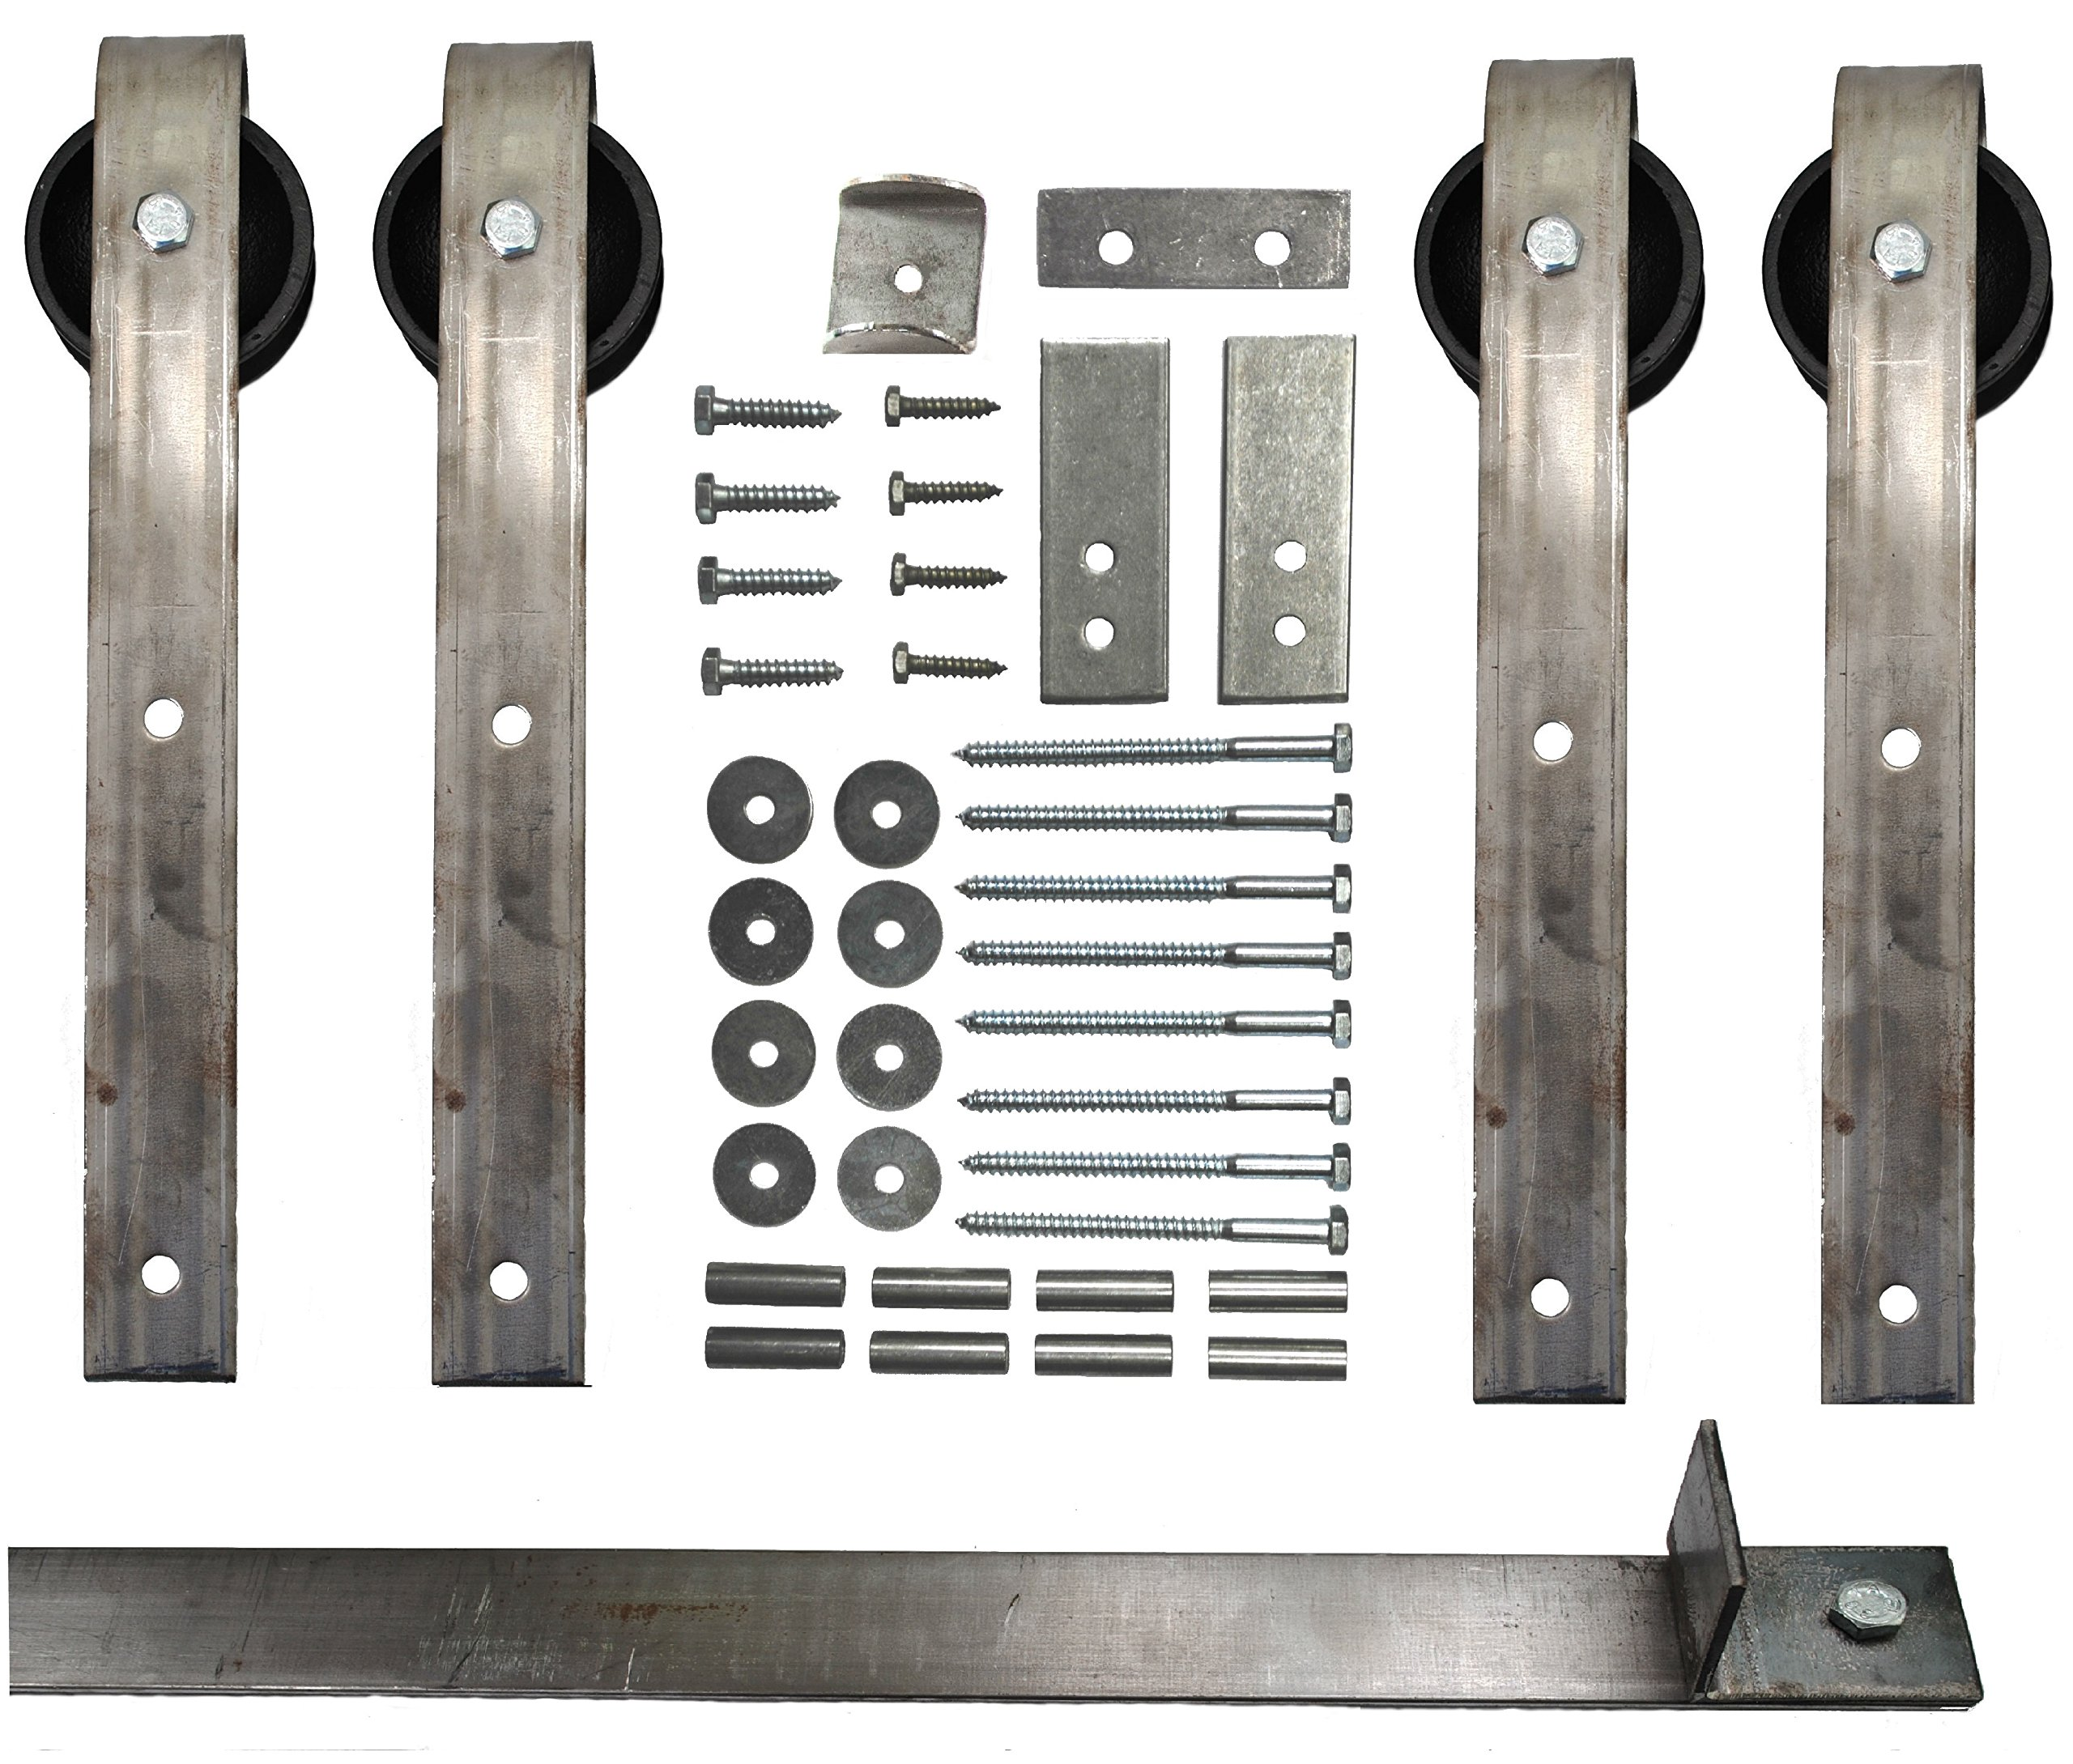 Double Sliding Barn Door Hardware Kit with 11 Ft. Track Included - Made in USA